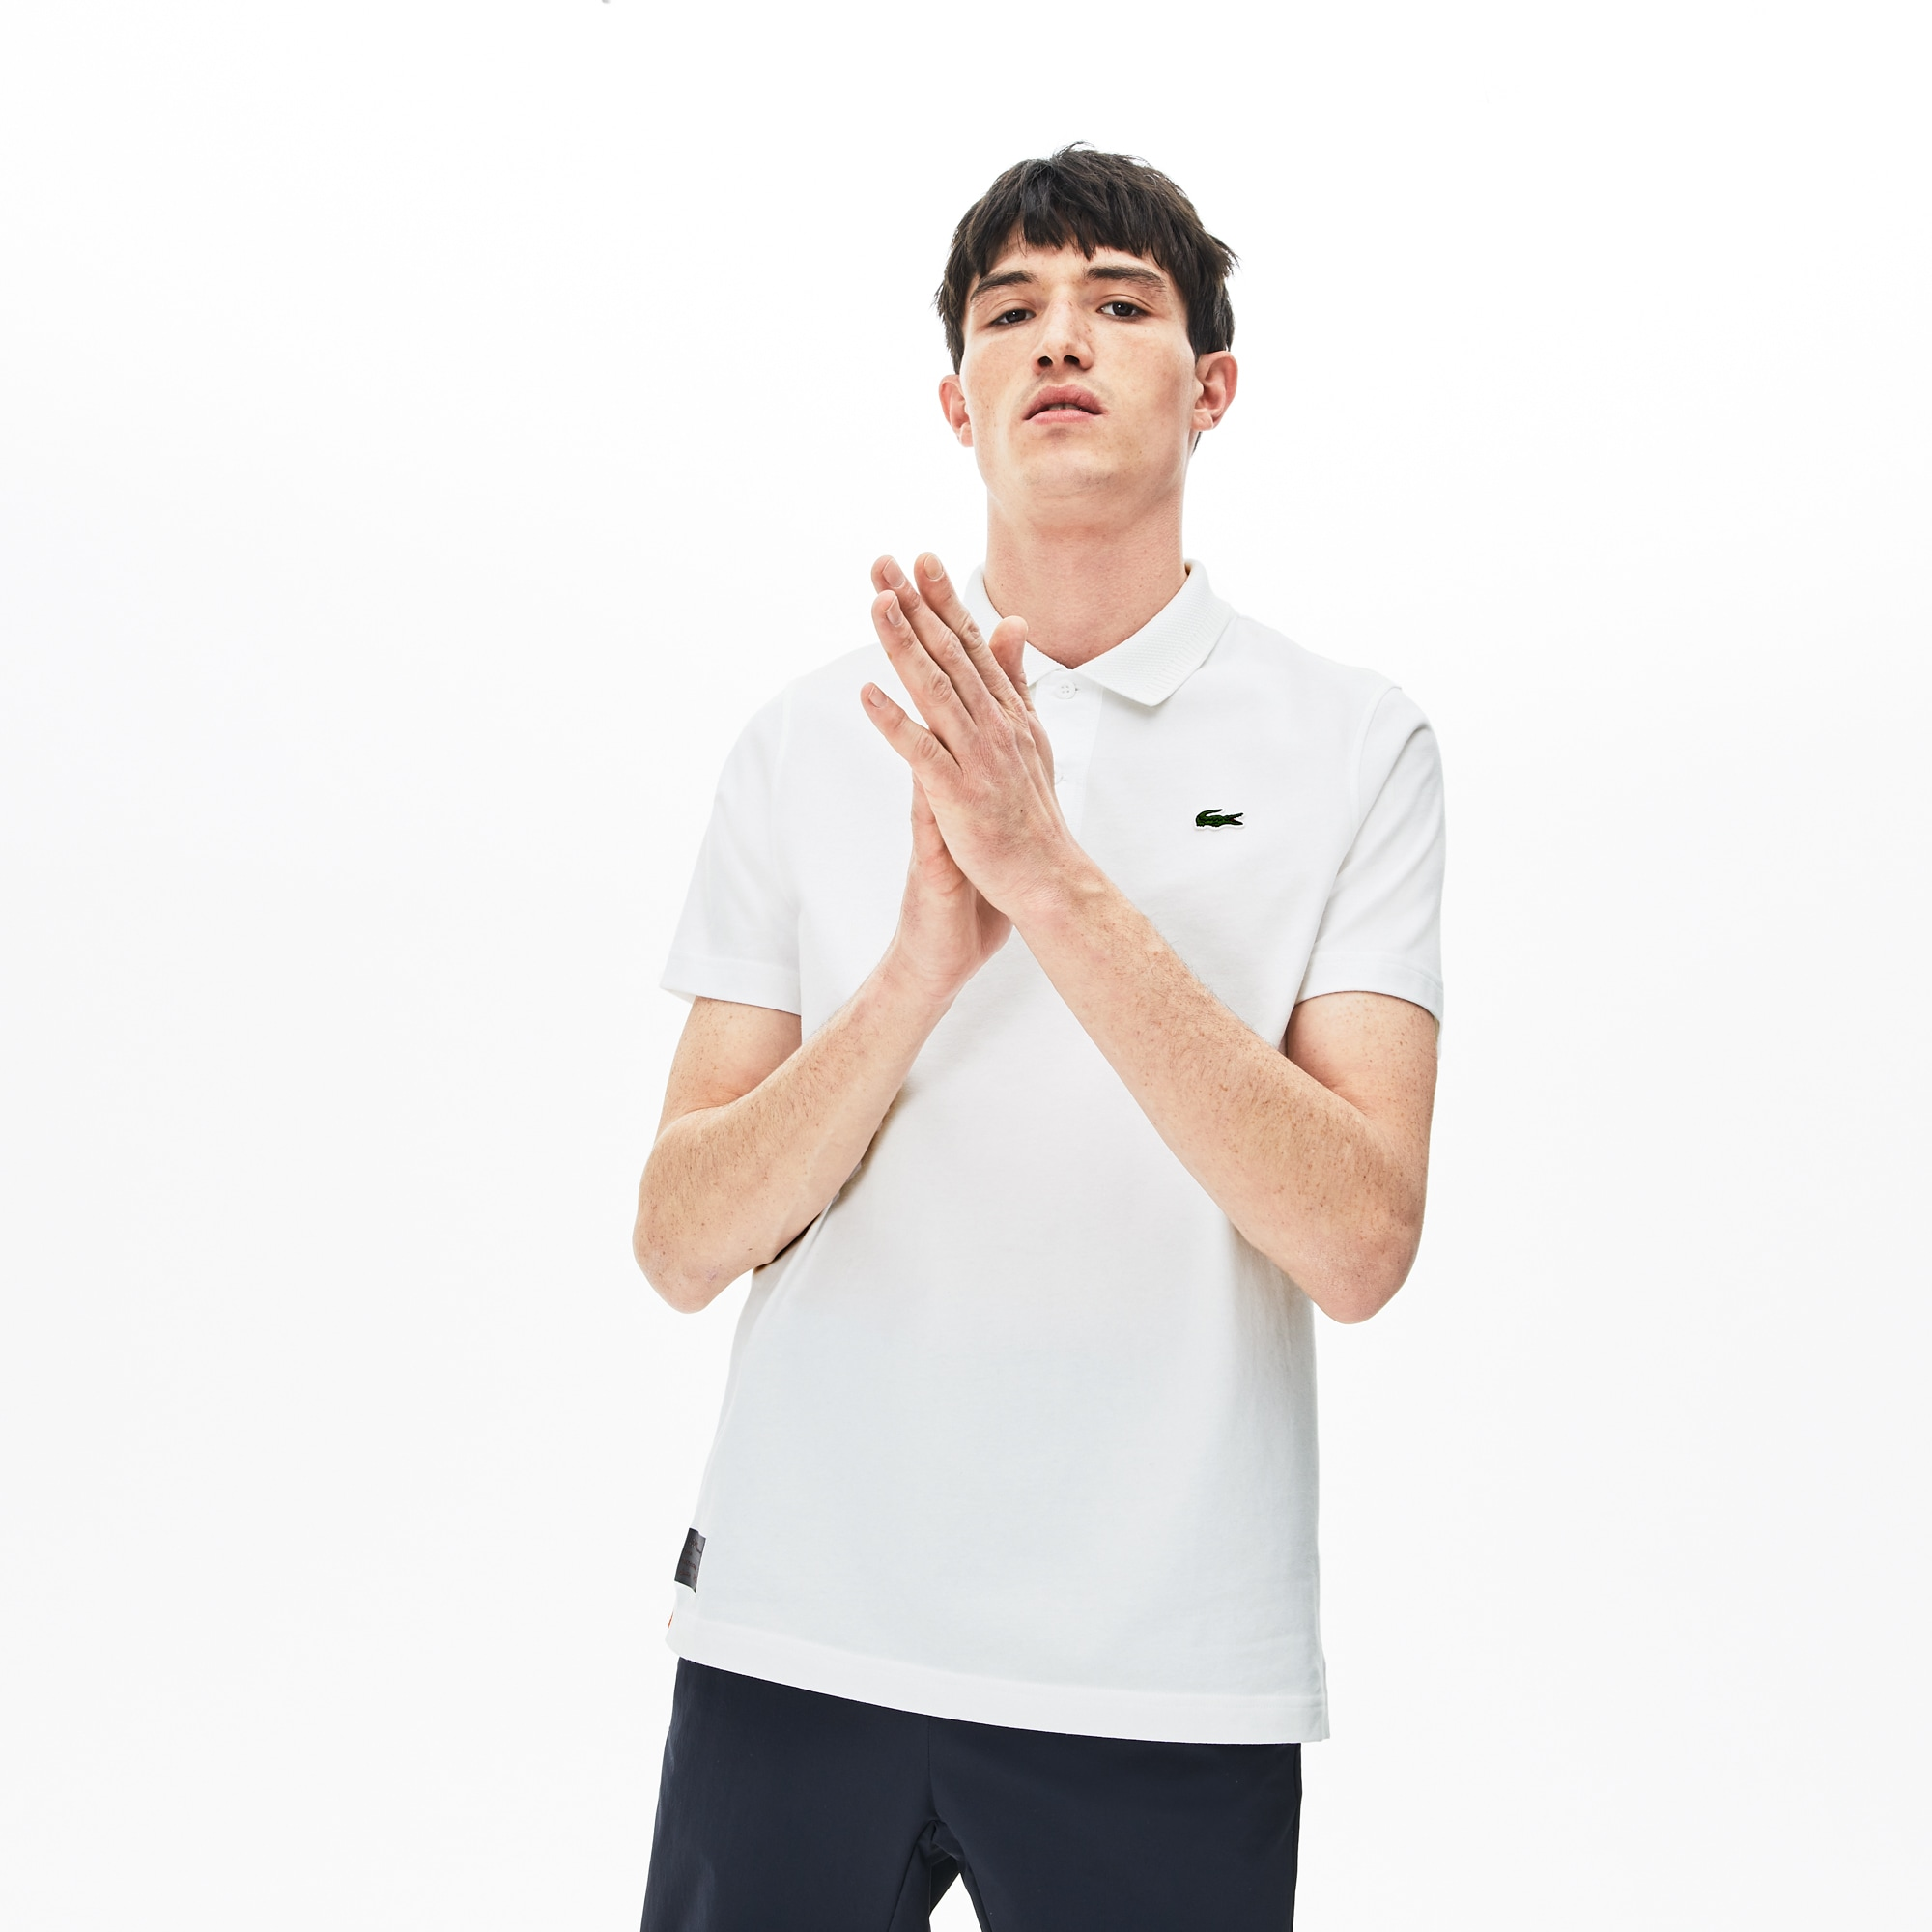 Lacoste Tops Men's SPORT Silicone Badge Cotton Jersey Polo